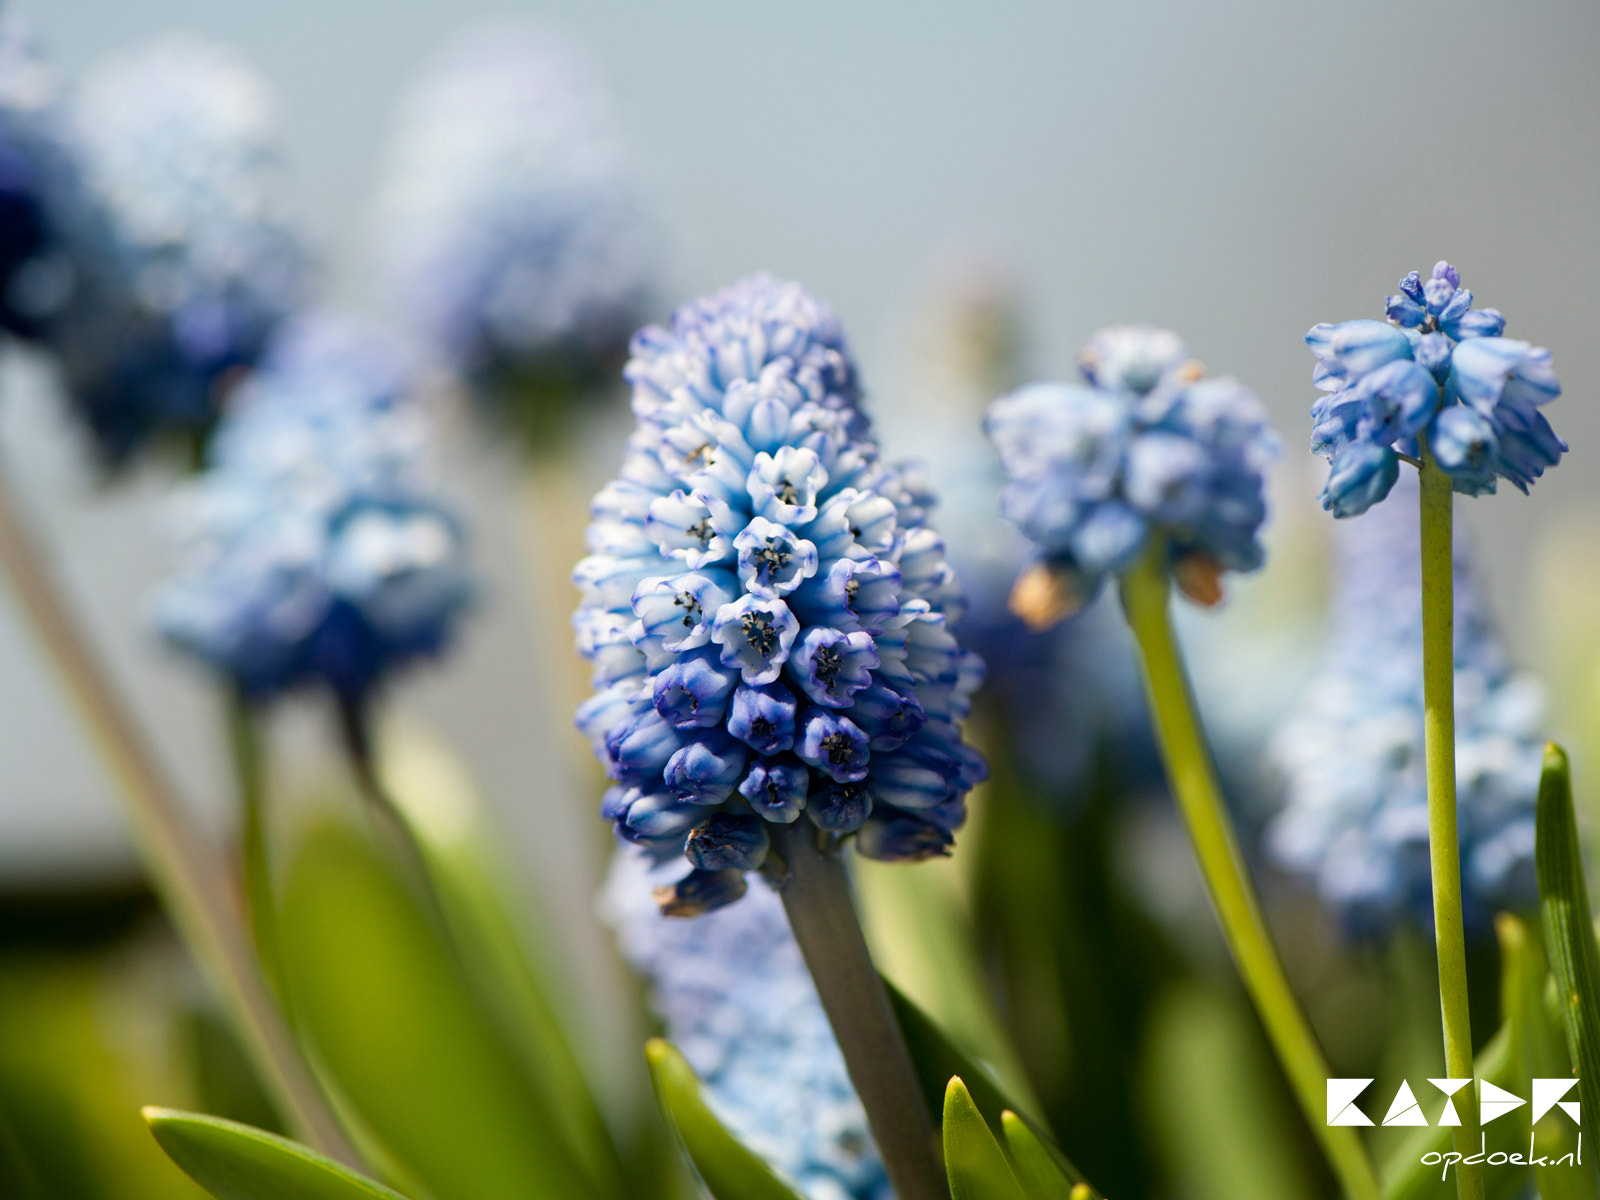 Photograph Baby blue-ish Muscari azureum by Joffrey Kater on 500px